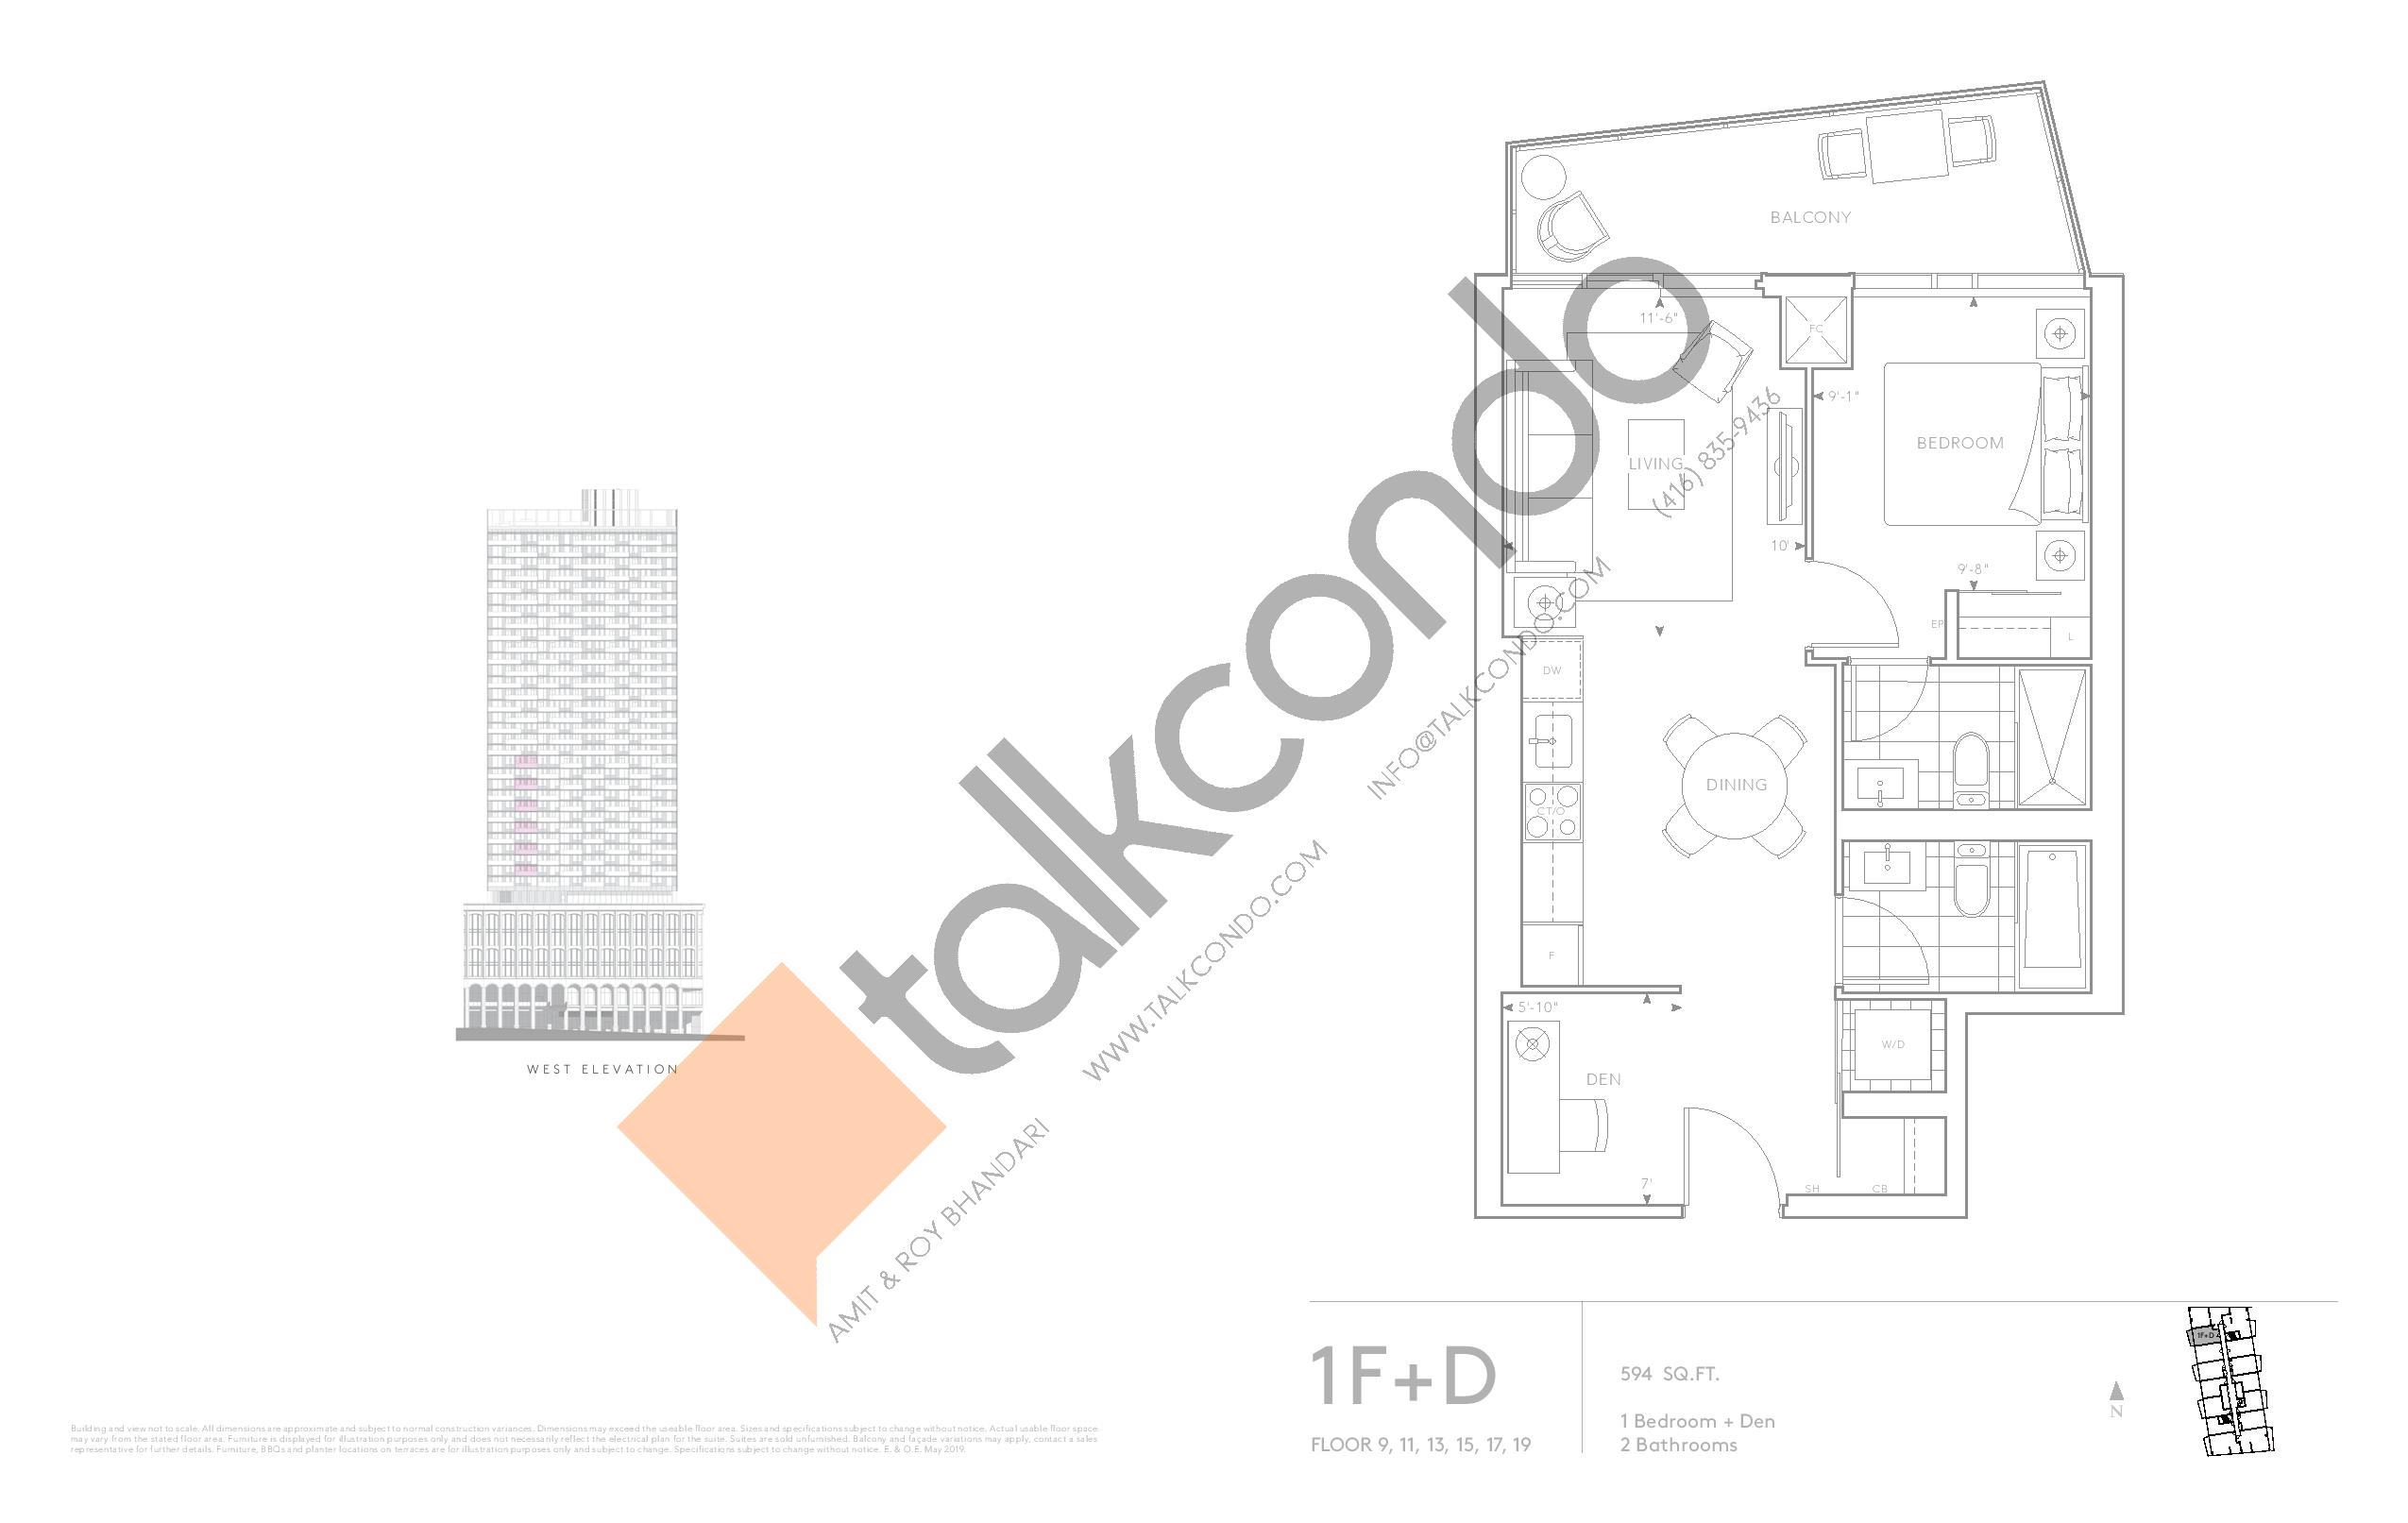 1F+D - Classic Series Floor Plan at Tridel at The Well Condos - 594 sq.ft